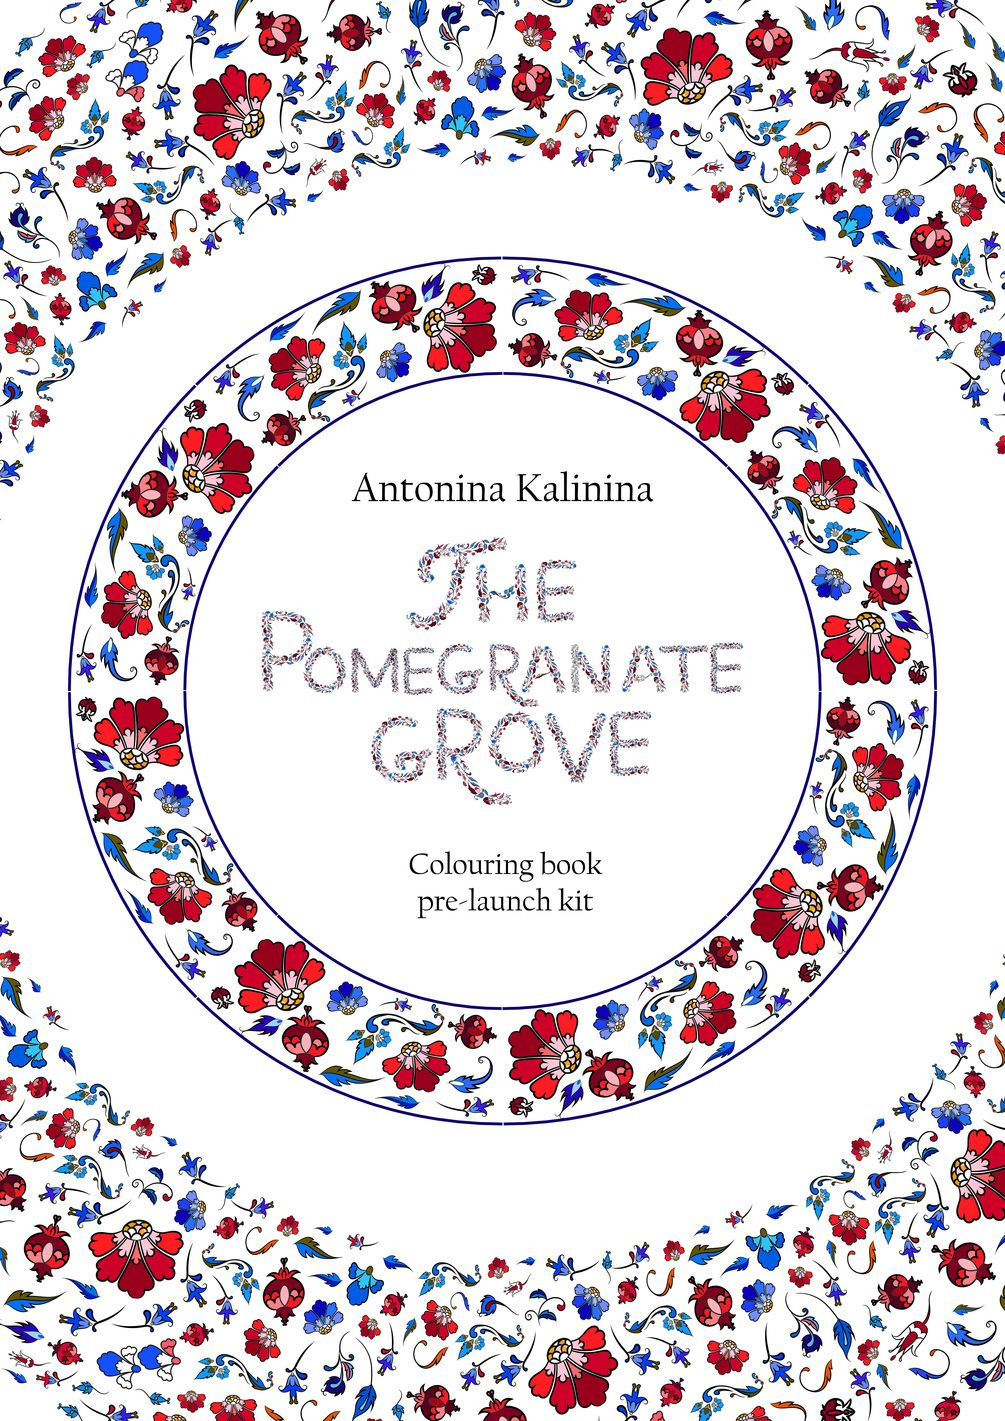 Coloring book software - The Pomegranate Grove A Colouring Book Pre Launch Samples Kit Two Intricate Colouring Pages